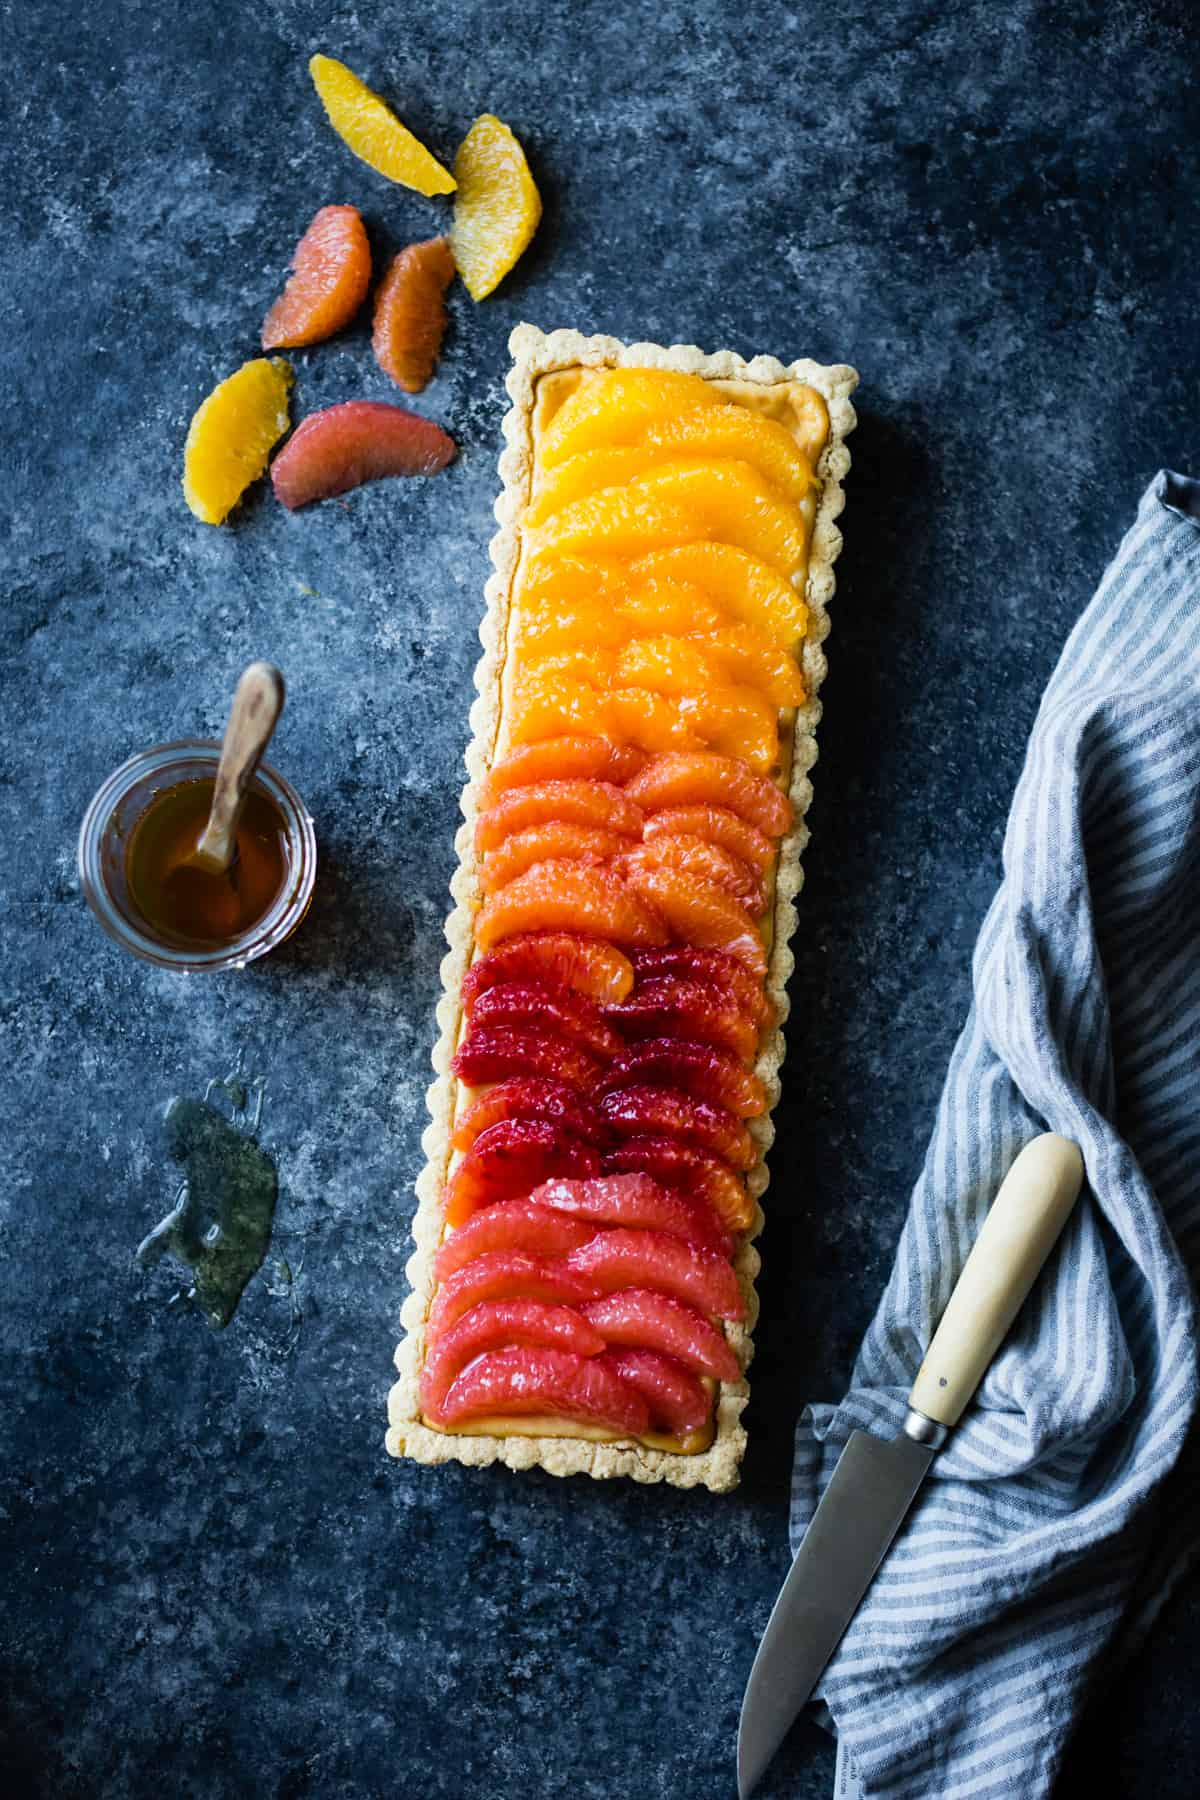 Gluten-Free Citrus Ricotta Tart with Almond Corn Flour Crust on table with slices of citrus